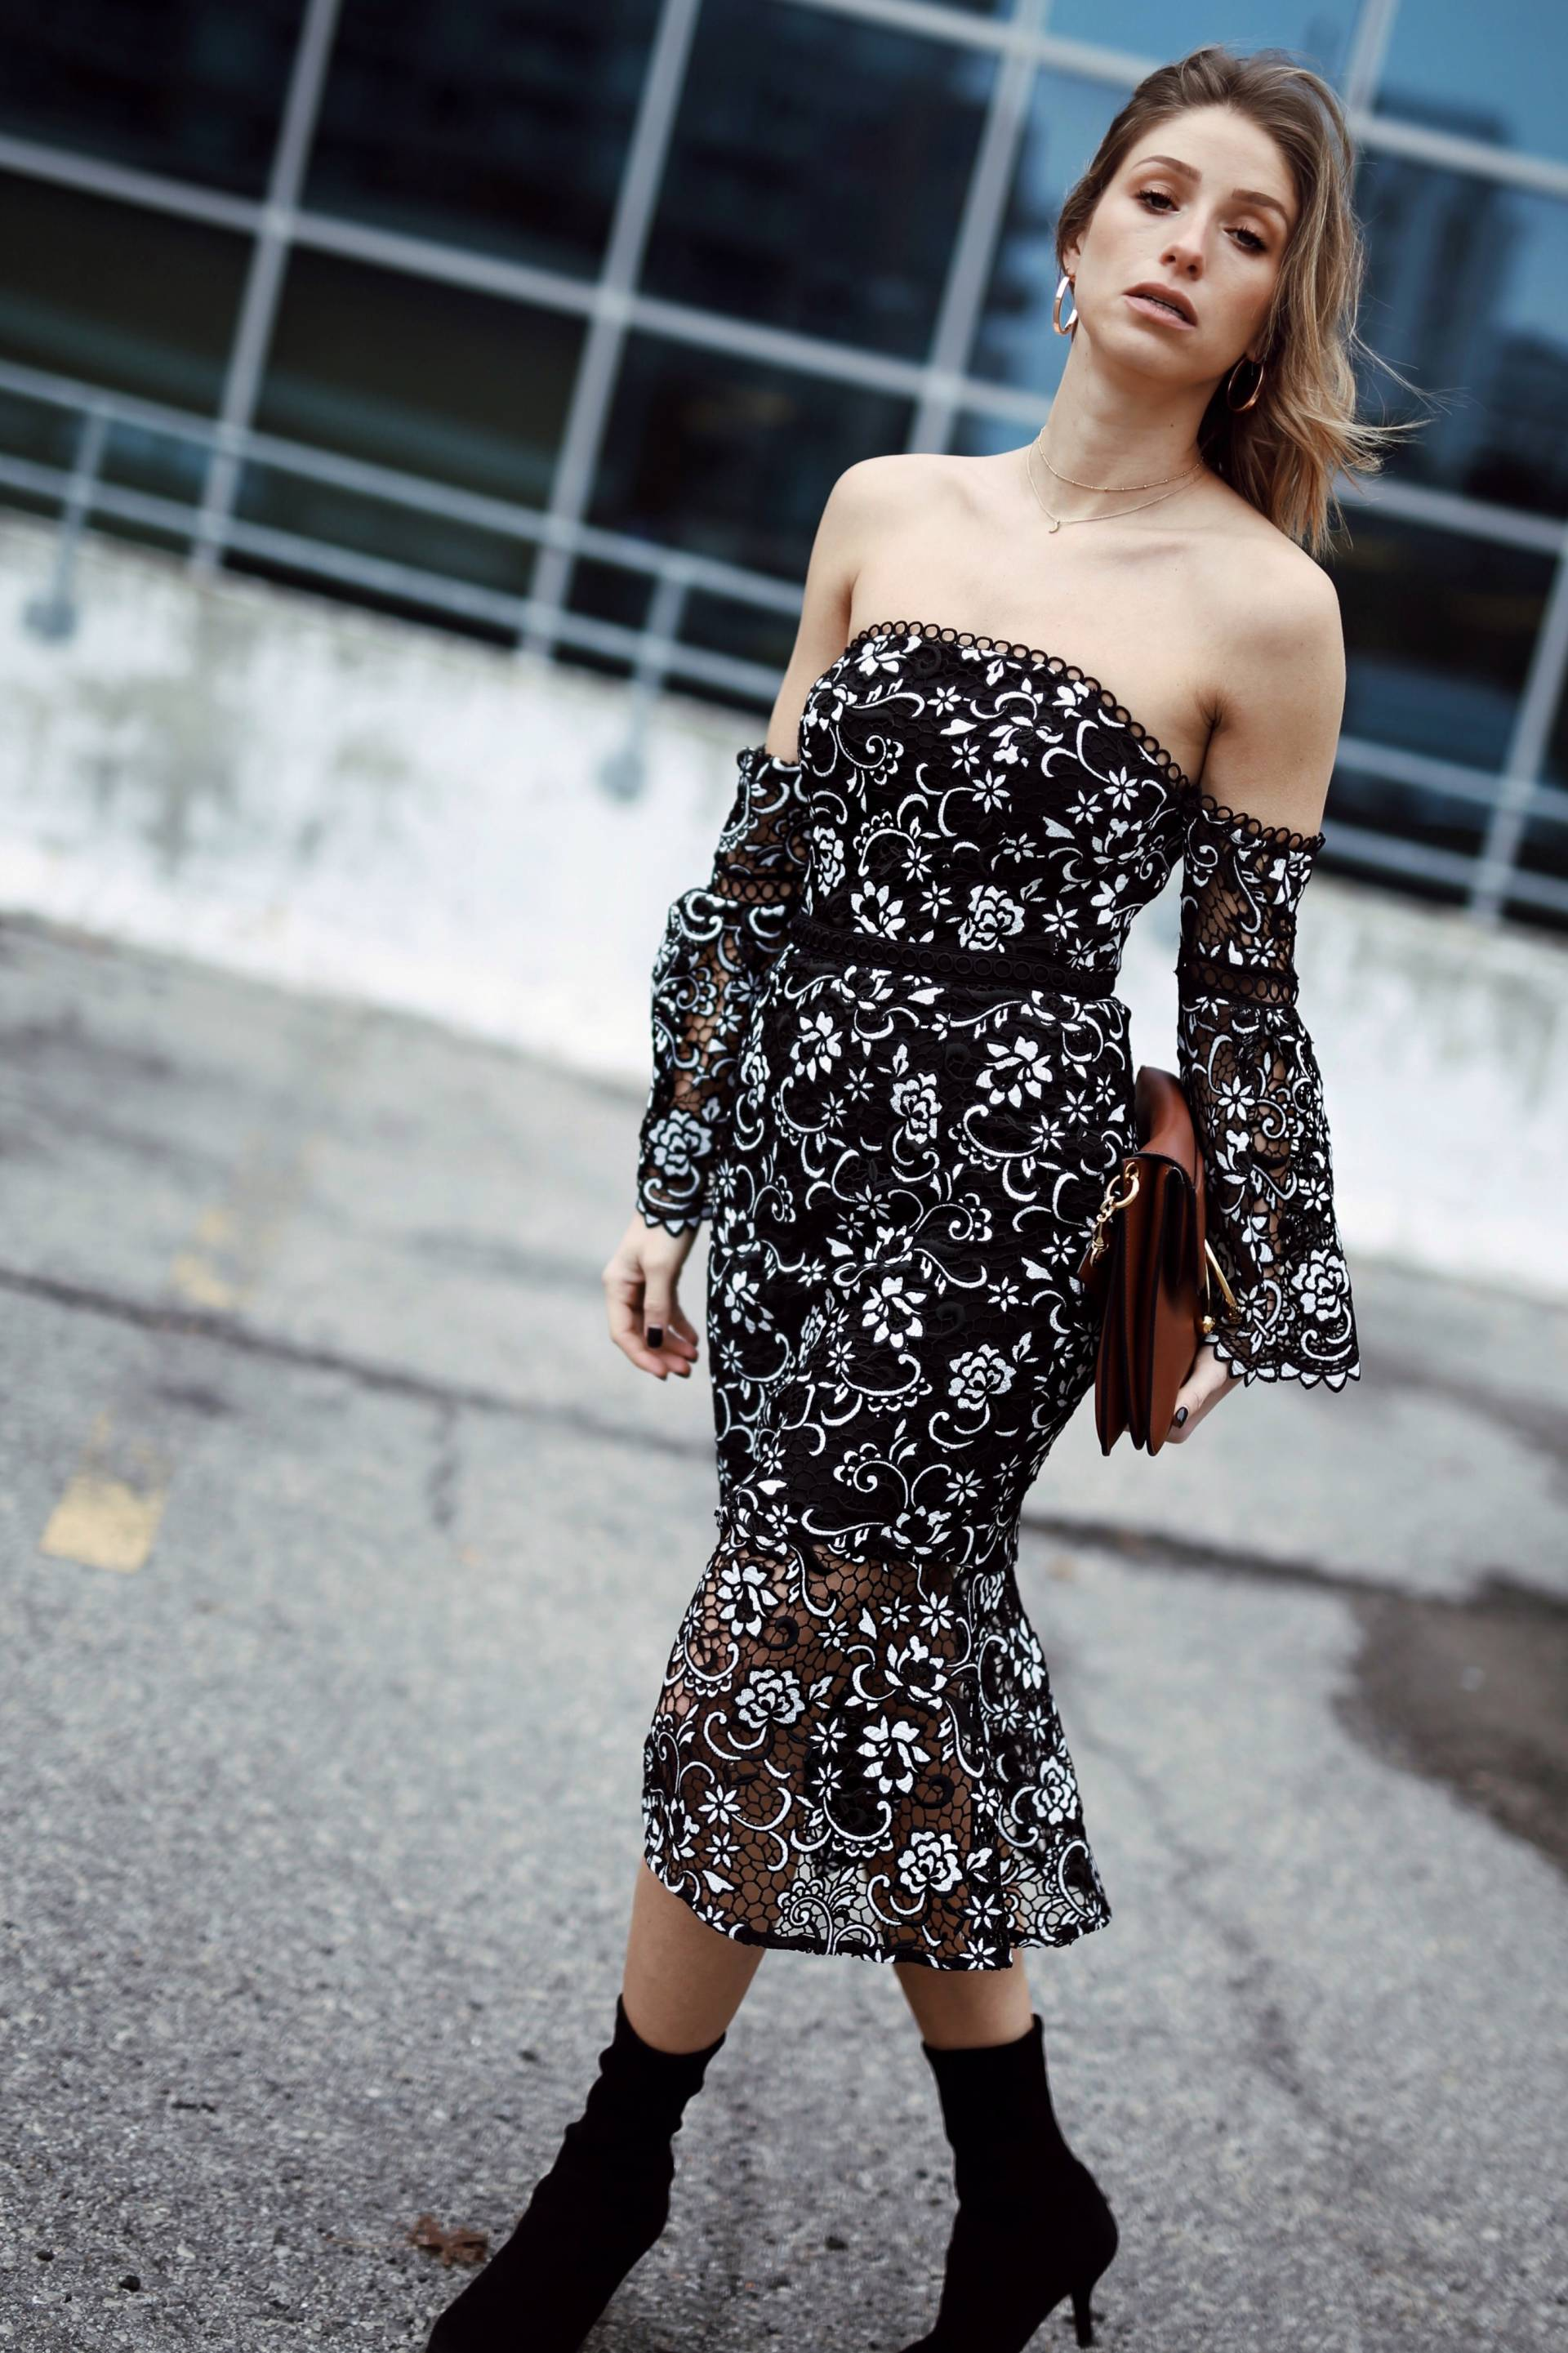 Style and beauty blogger Jill Lansky of the August Diaries on 5 ways to toughen up a dress in floral off the shoulder dress, stuart weitzman clinger boots